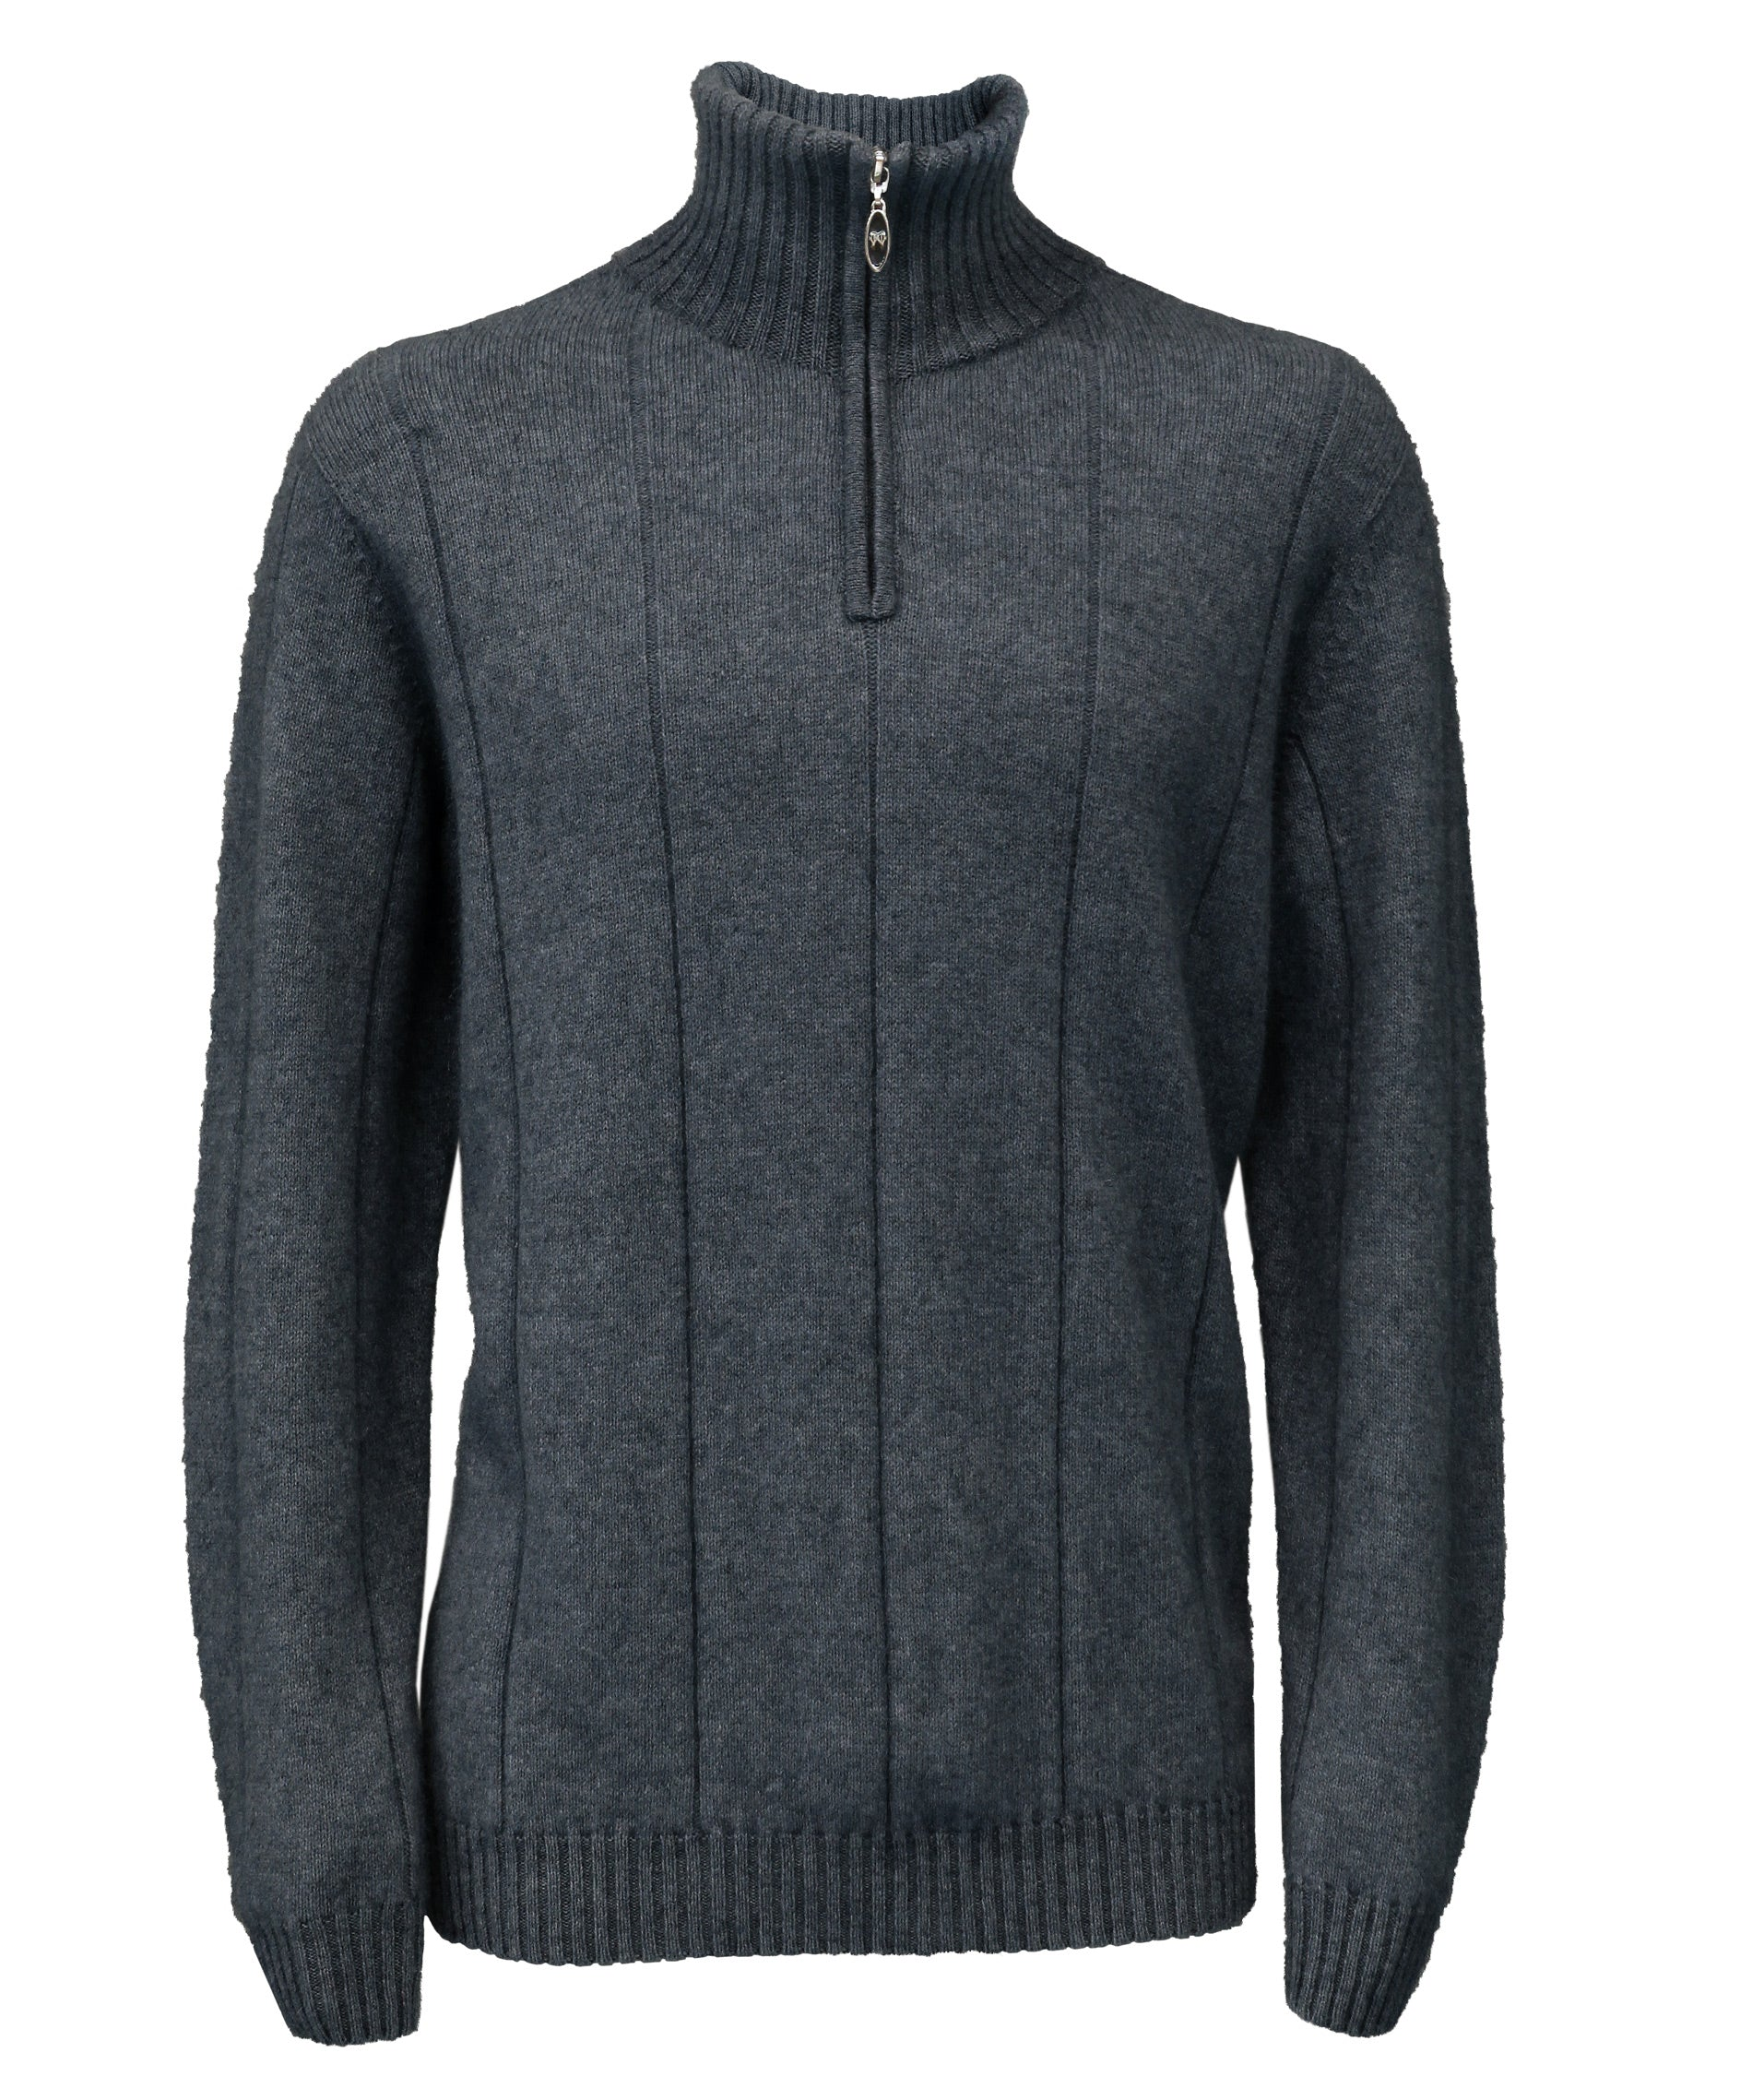 Javelin Zip Neck Possum Jumper